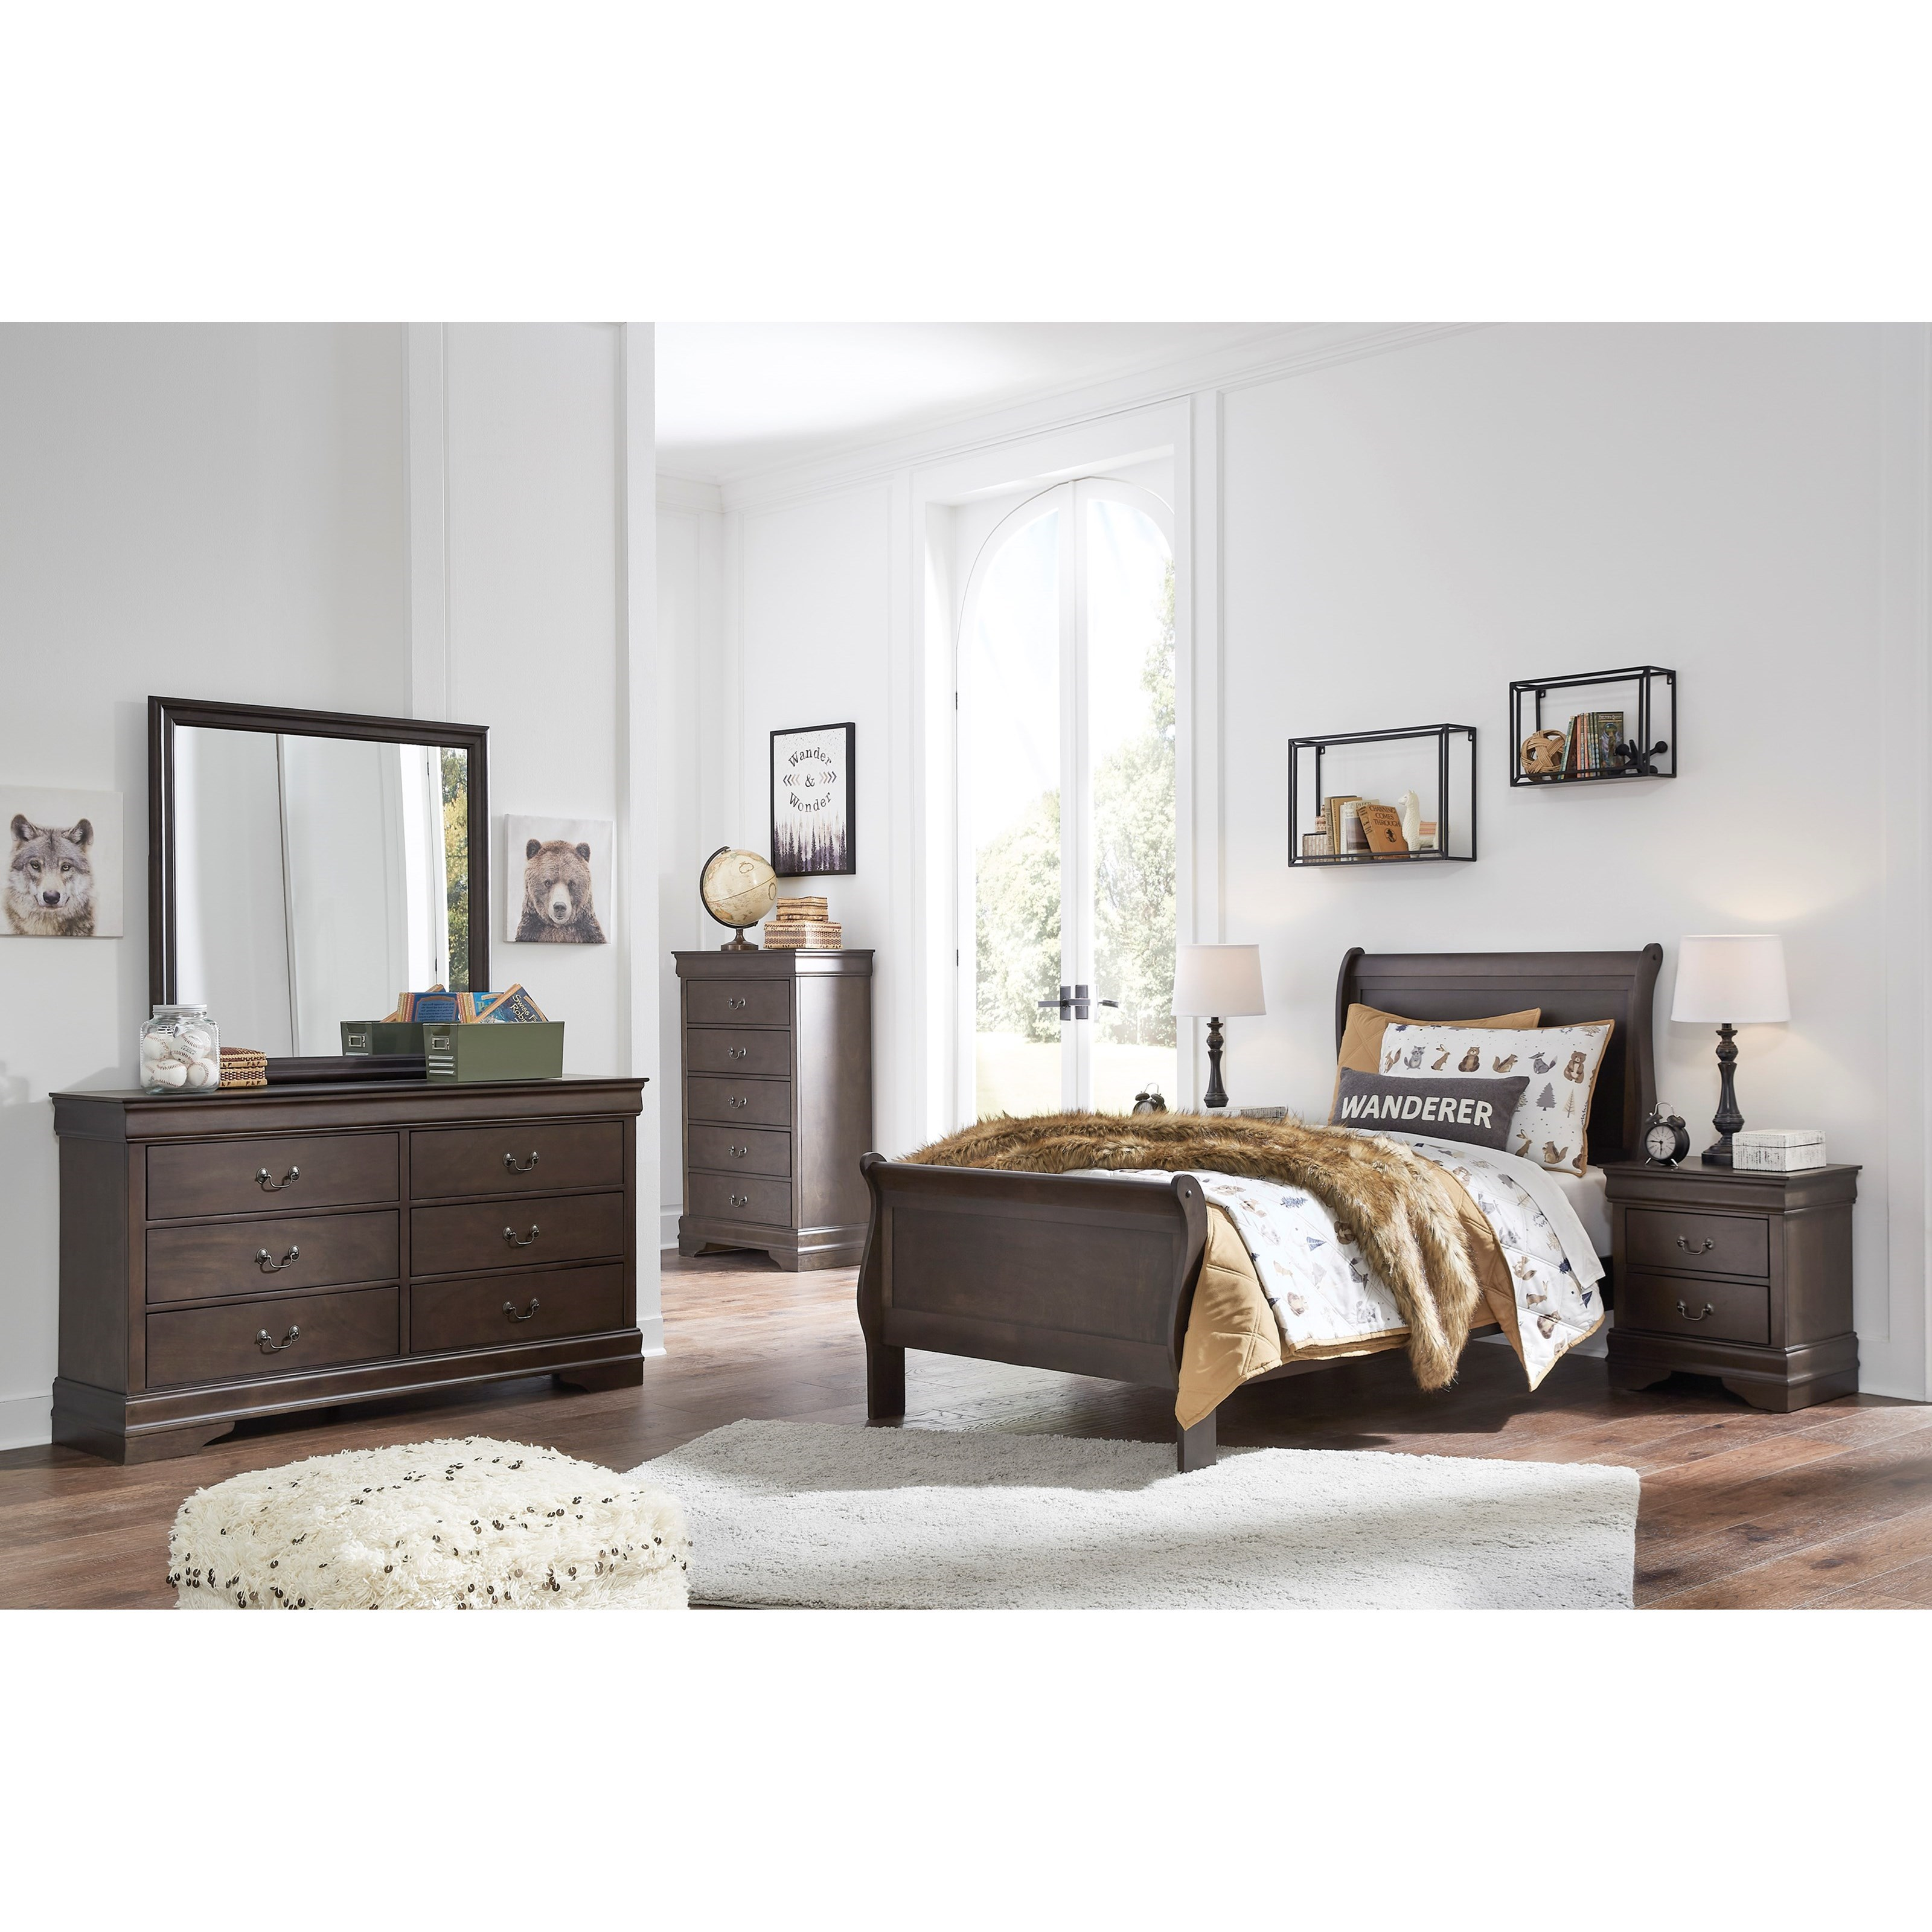 Leewarden Twin Bedroom Group by Signature Design by Ashley at Smart Buy Furniture